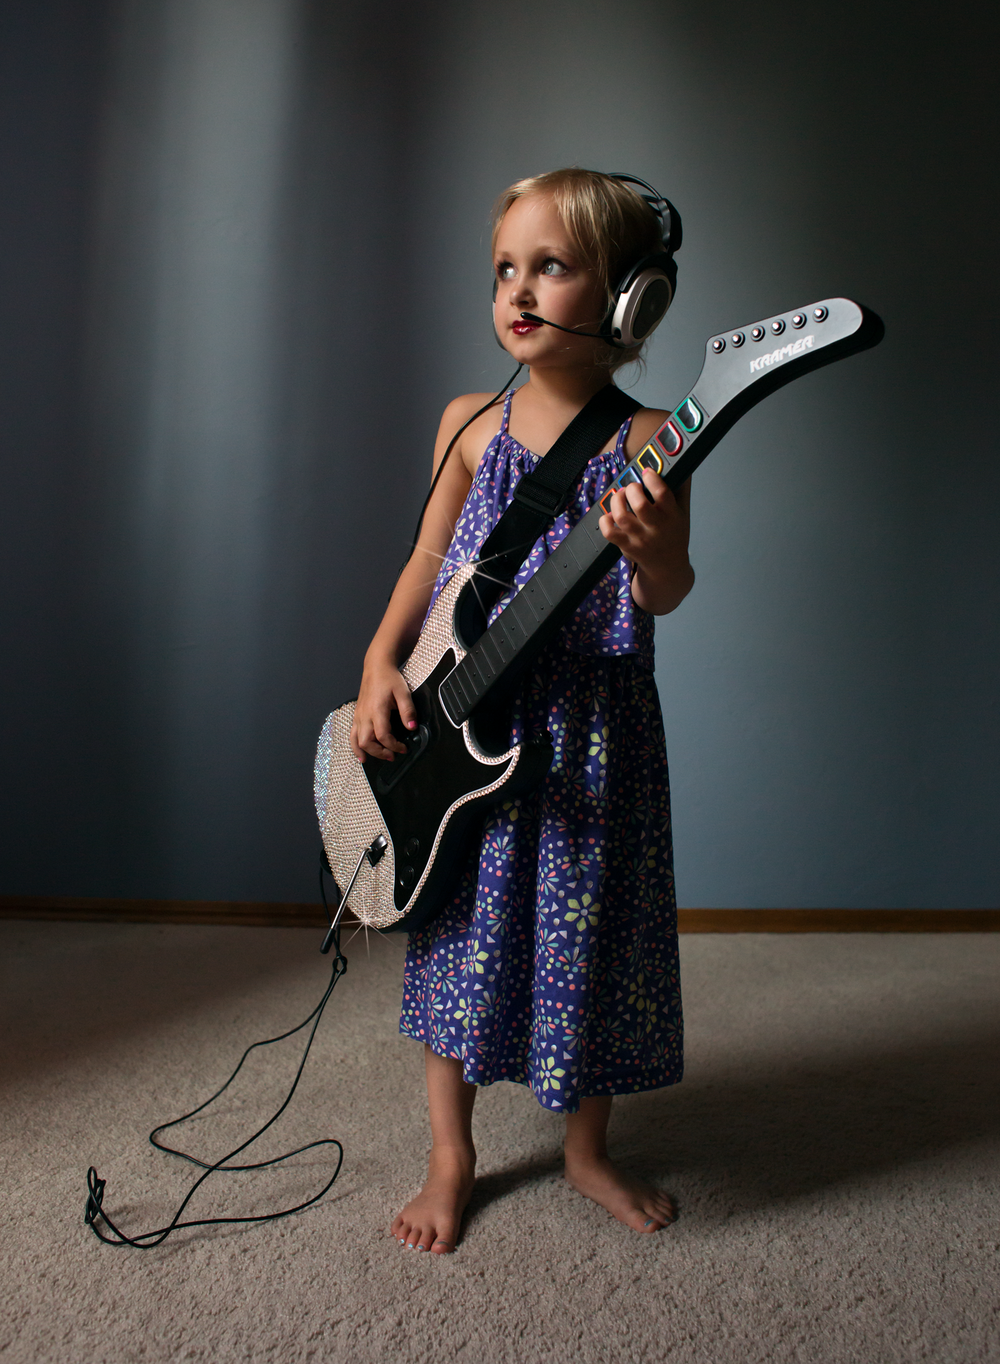 04 little rocker girl playing bling guitar hero headset lifestyle natural light edmond ok photographer oklahoma city (1).png